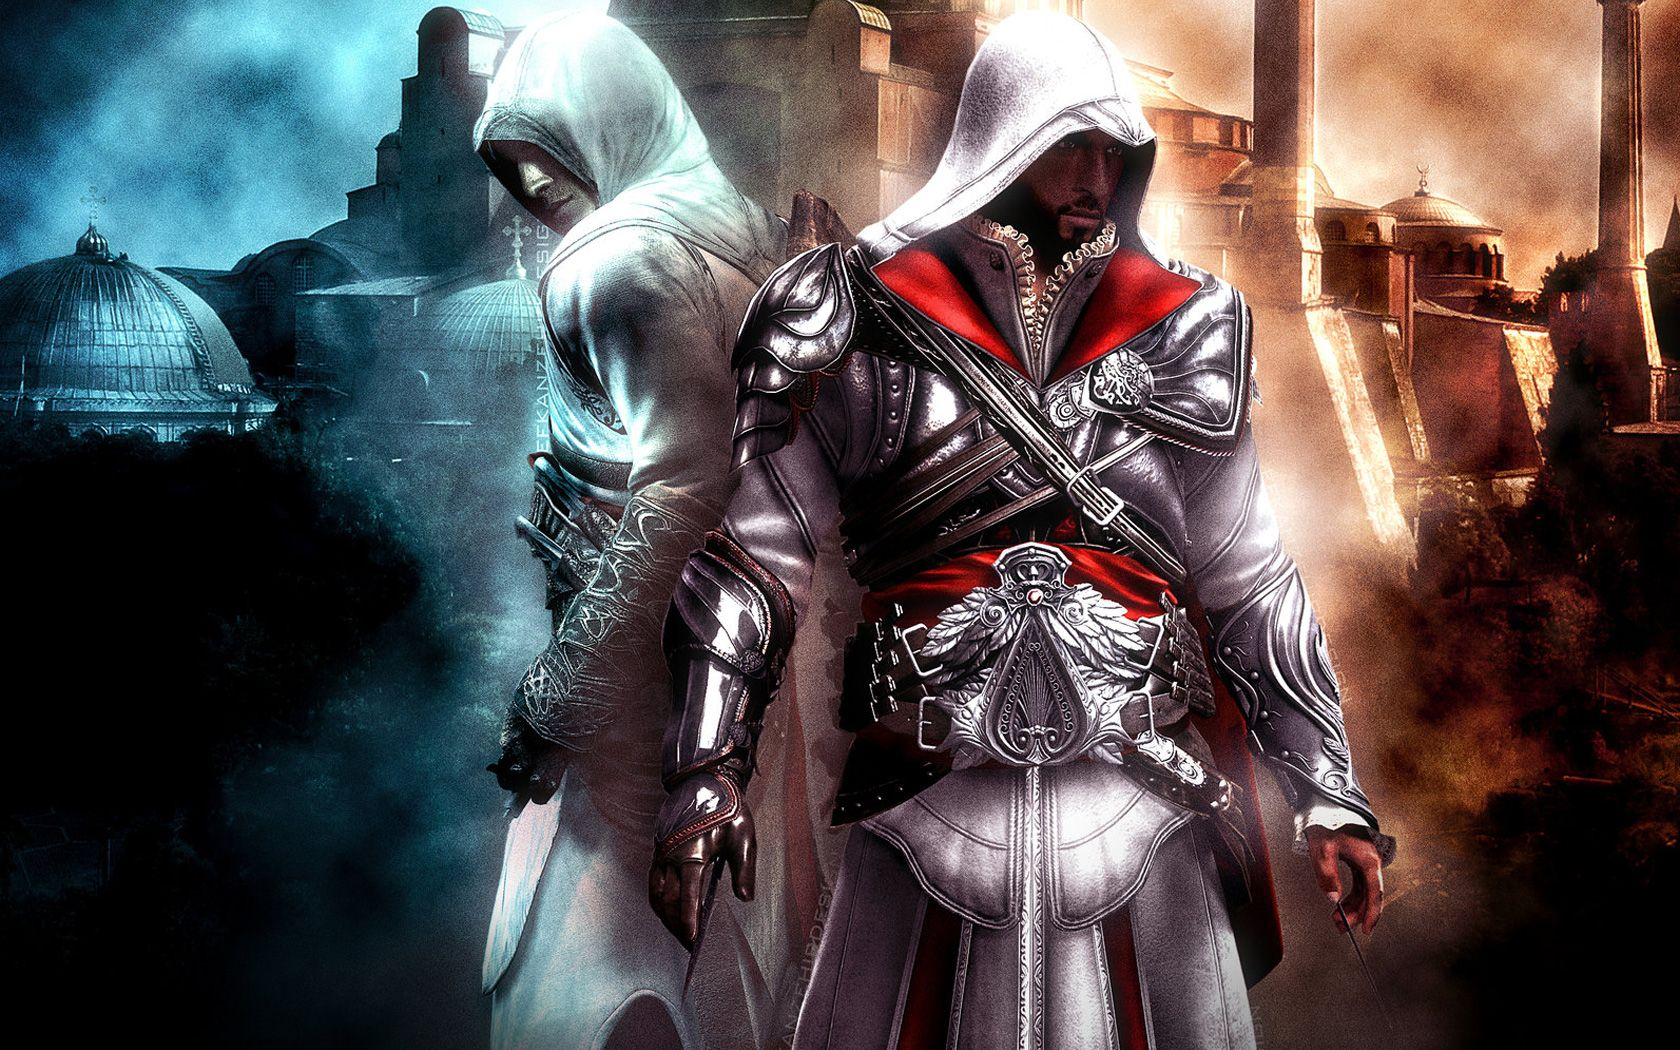 Wallpaper Assassins Creed Revelations Hd Wallpapers Assassin S